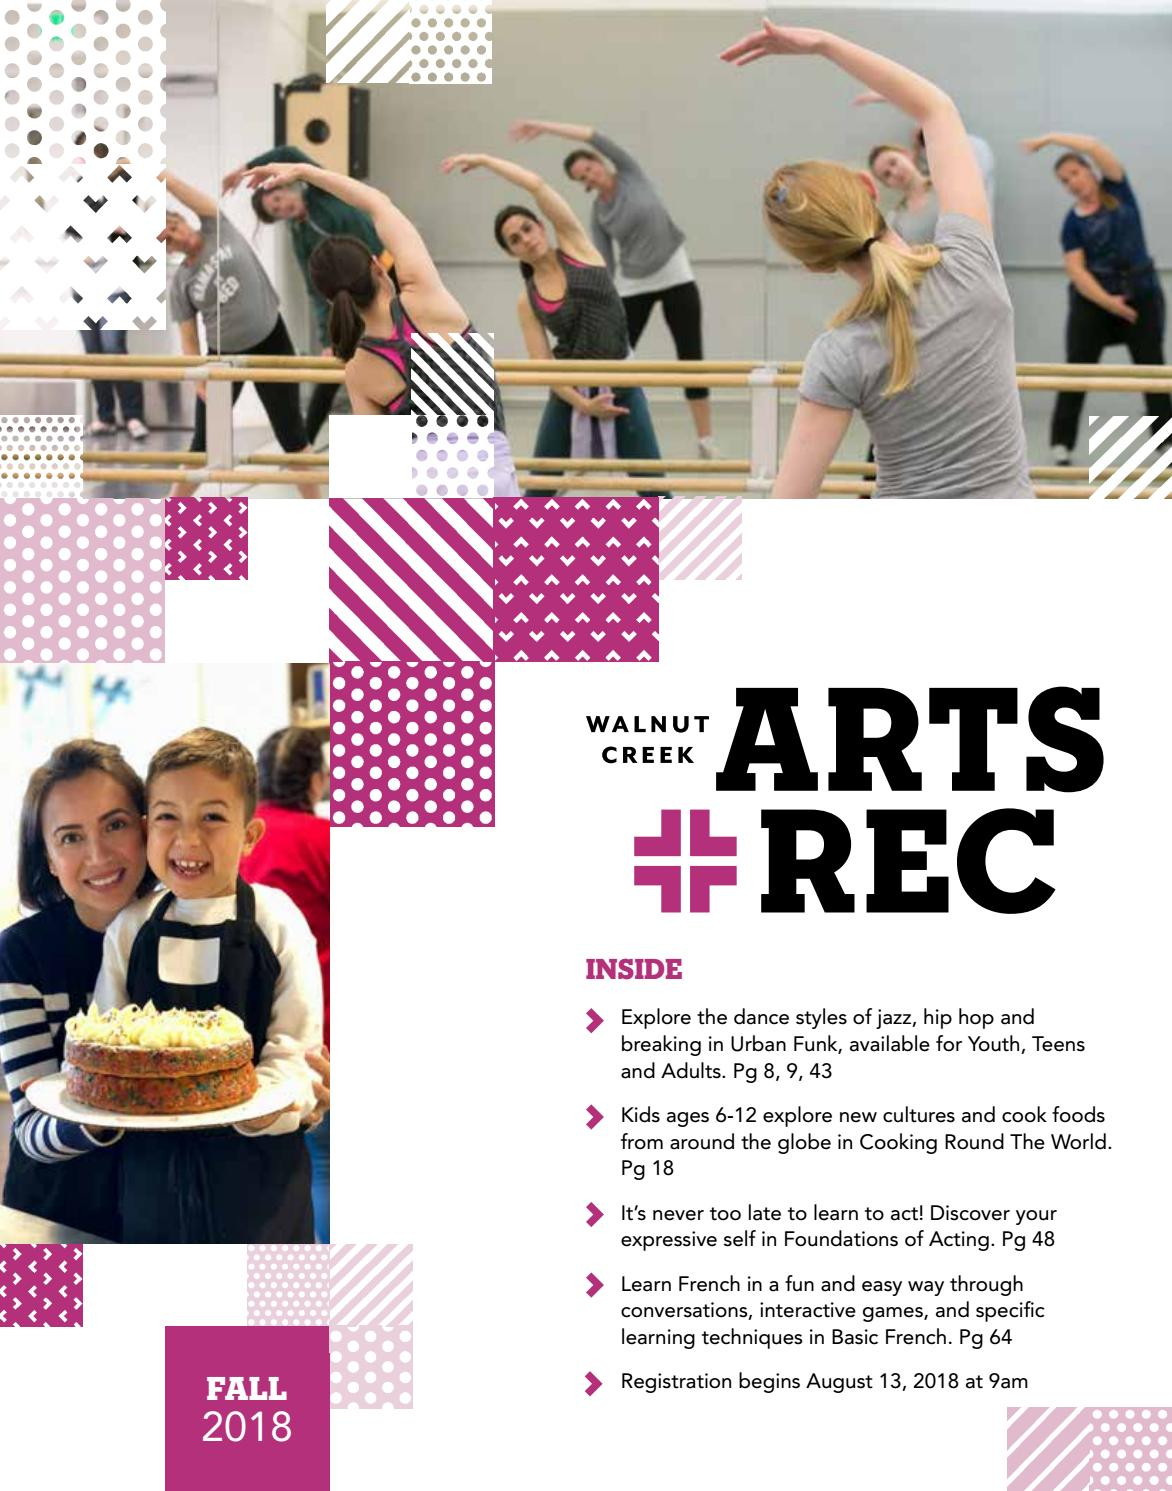 0e487ed336 City of Walnut Creek Guide to Arts + Rec - Fall 2018 by City of Walnut  Creek - issuu